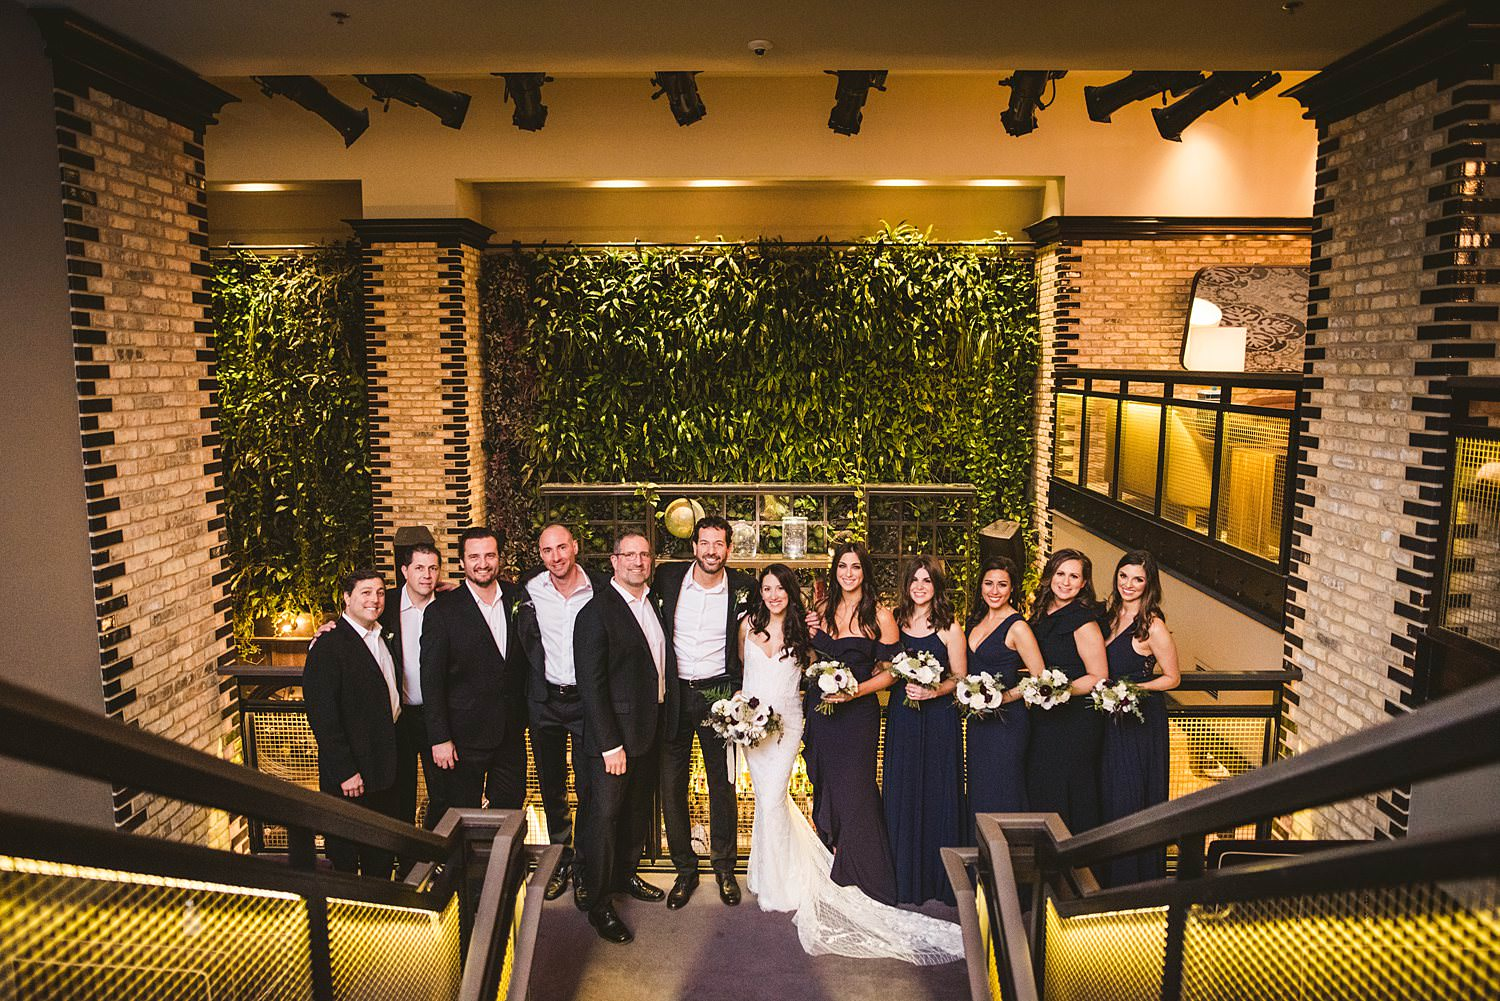 Thompson Hotel and RM Champagne Salon Chicago Wedding 45.jpg